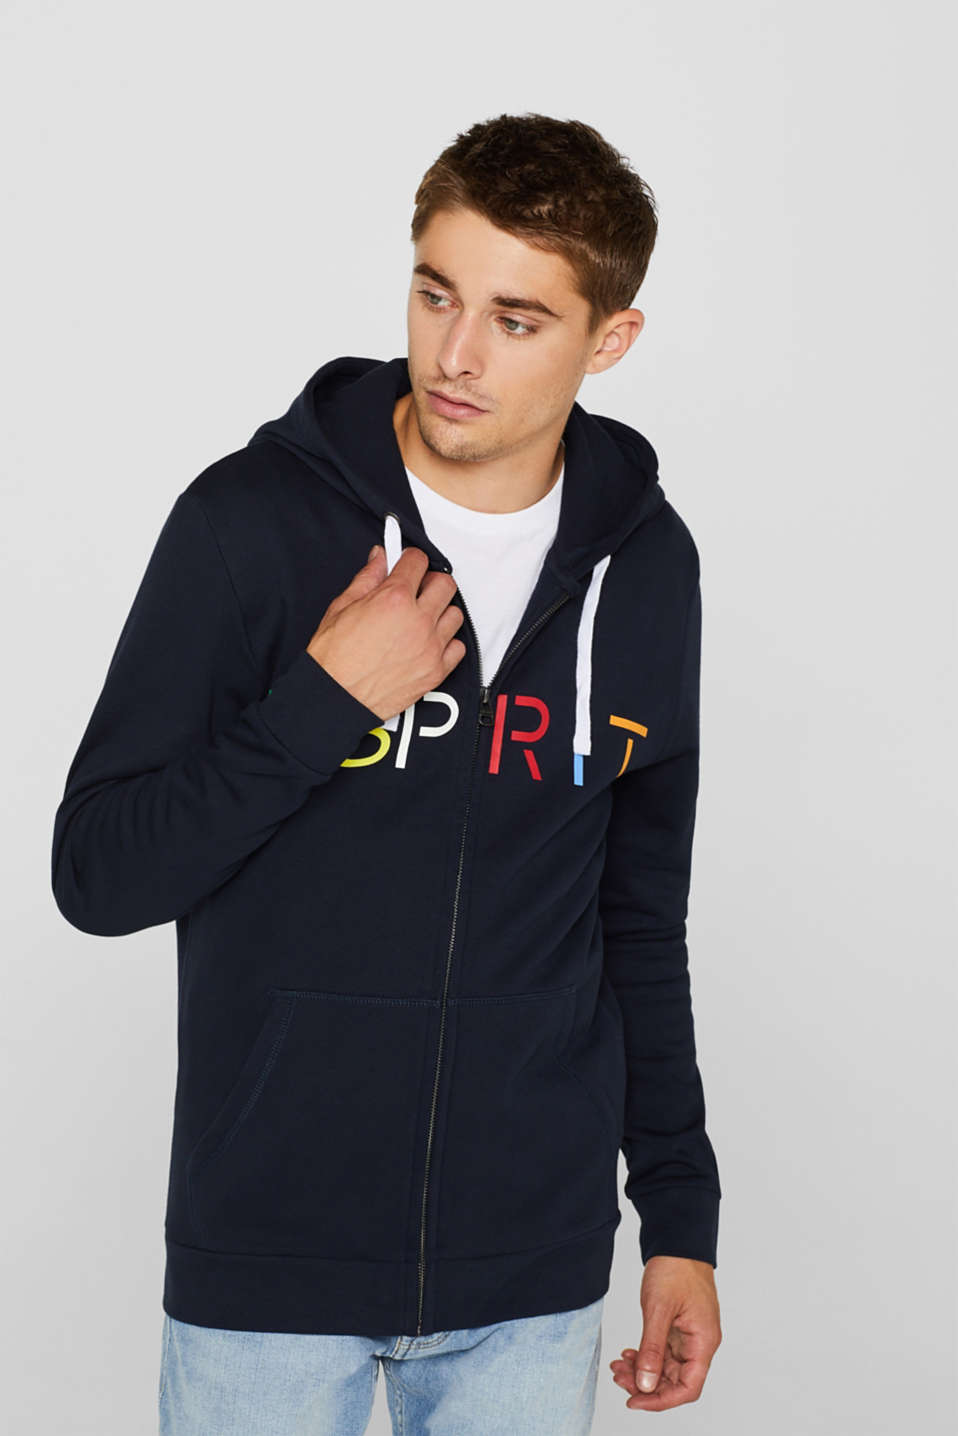 Sweatshirt cardigan with logo, 100% cotton